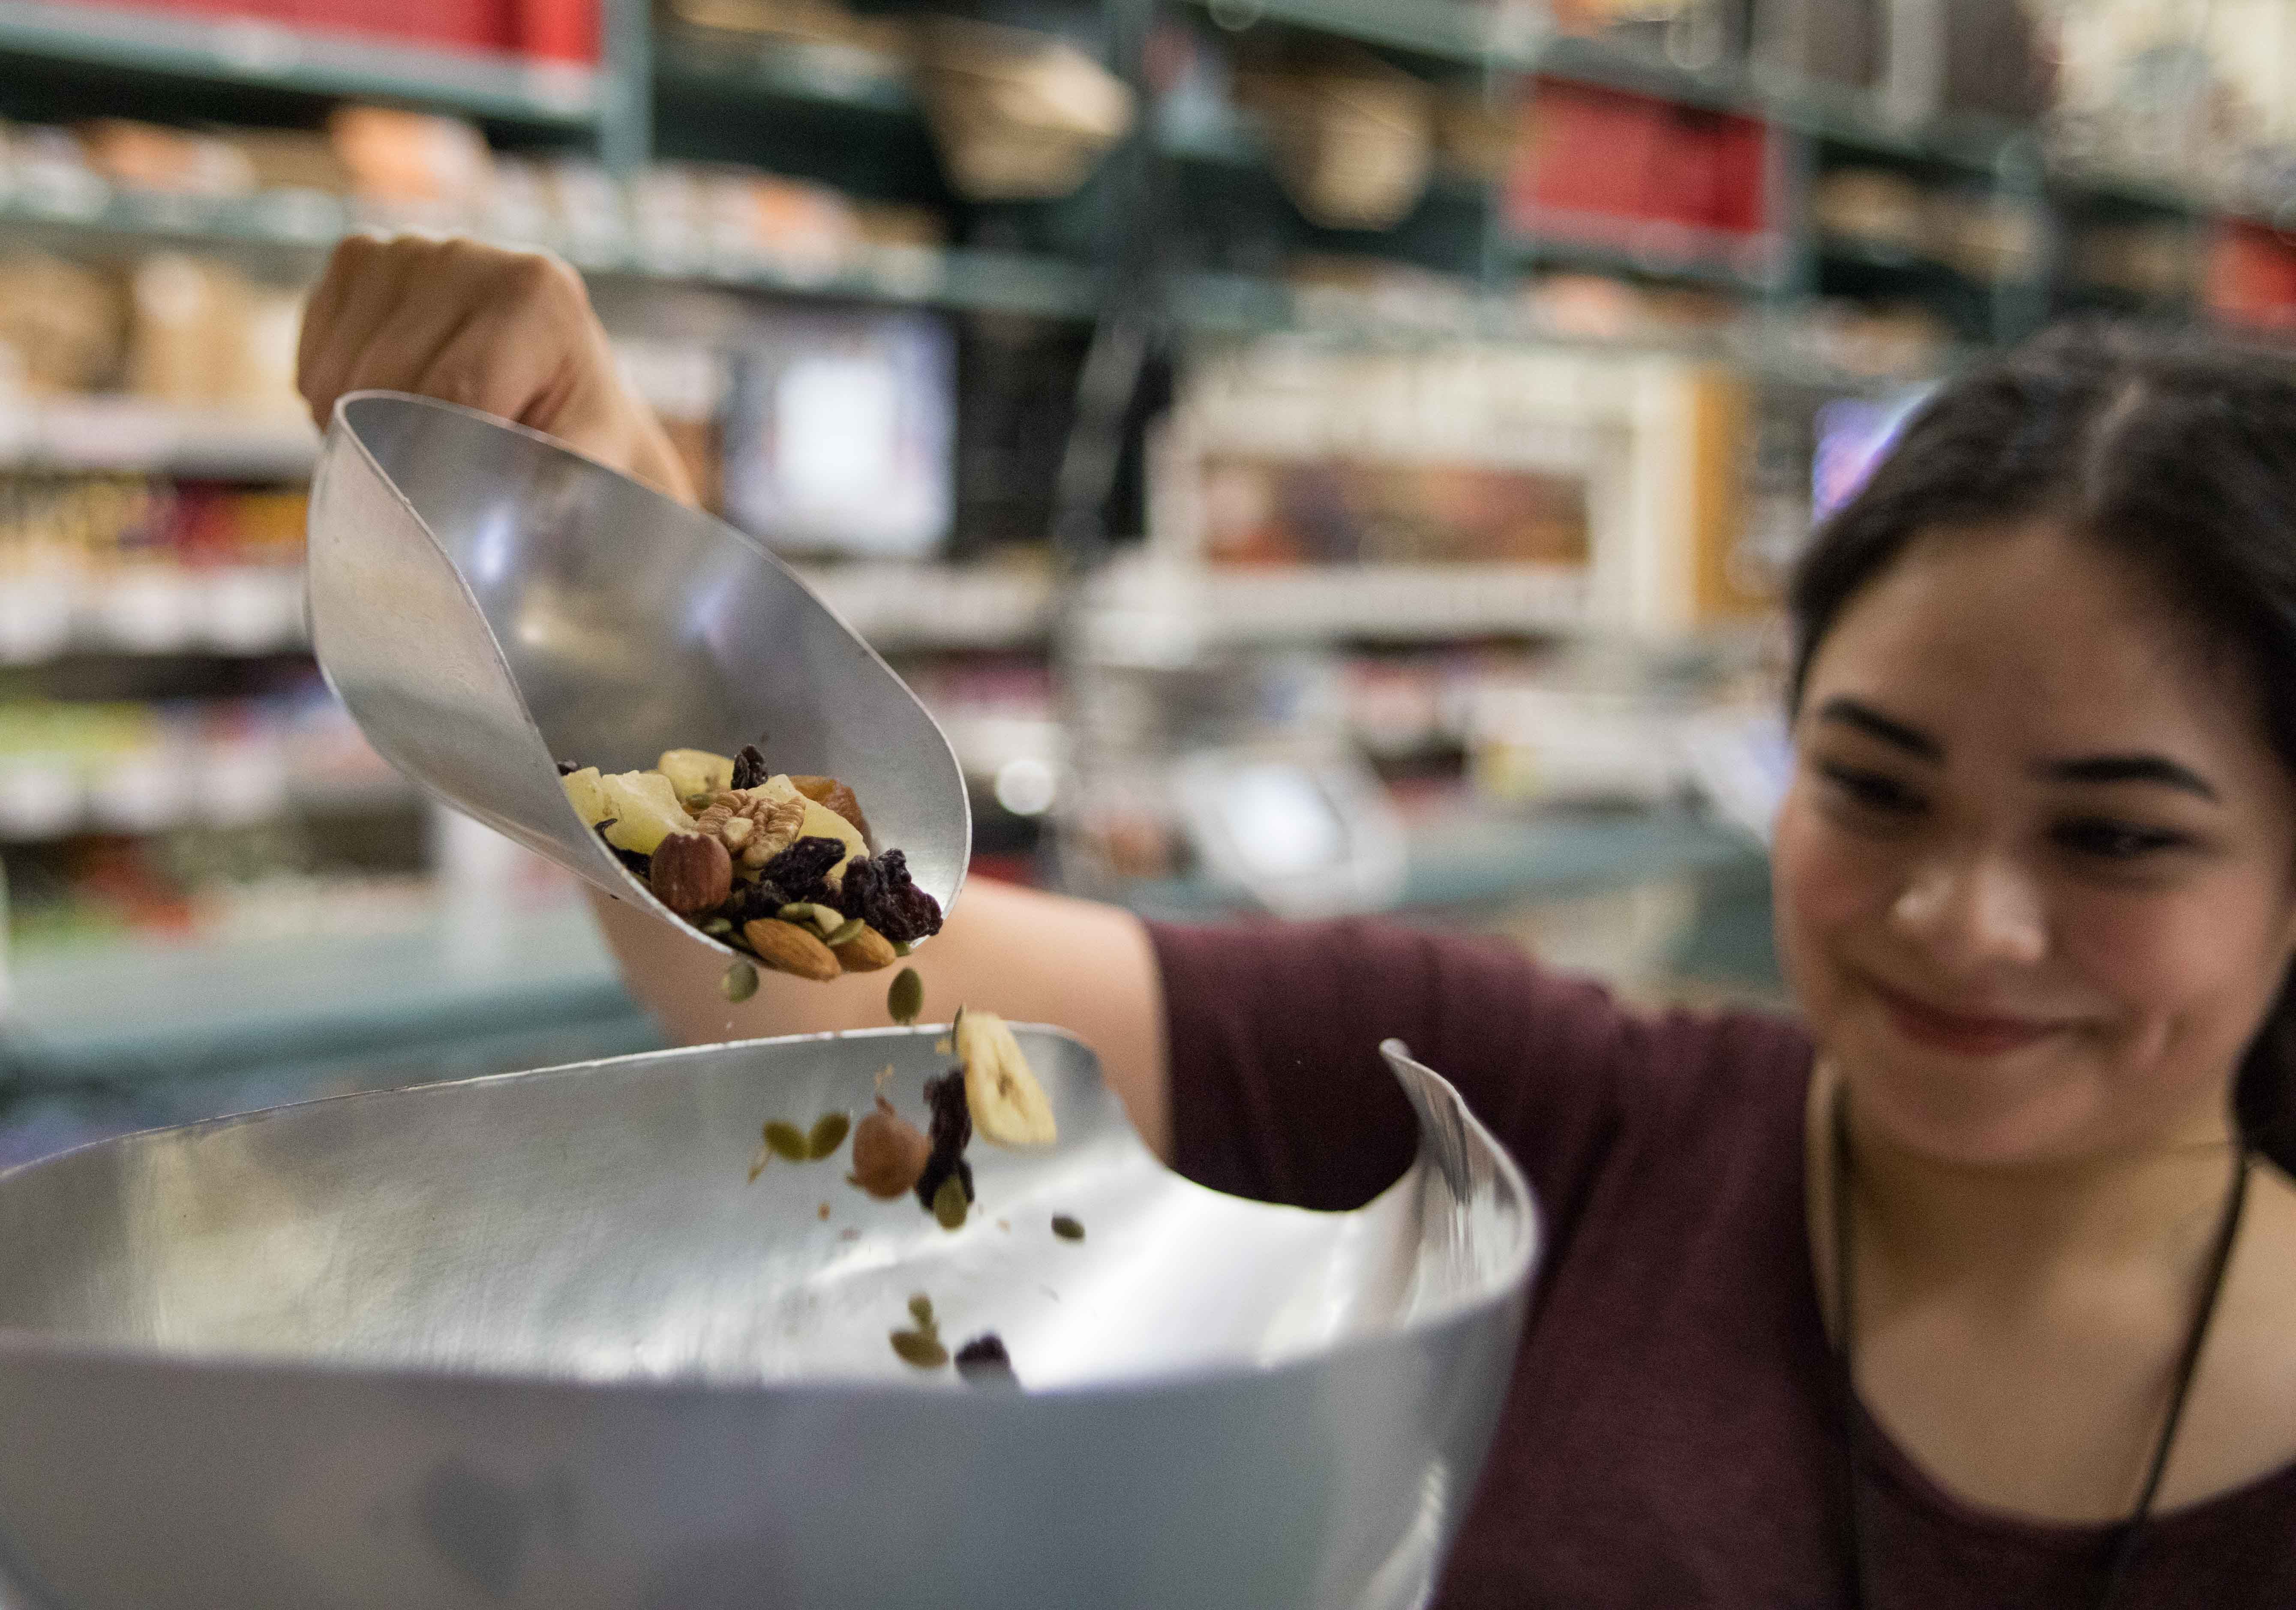 Cashier Vanessa Vazquez weighs out a half pound of the Nifty Nut House's tropical mix for a customer on Tuesday evening. The Nifty Nut House is a third generation family-owned business that was established in 1937.